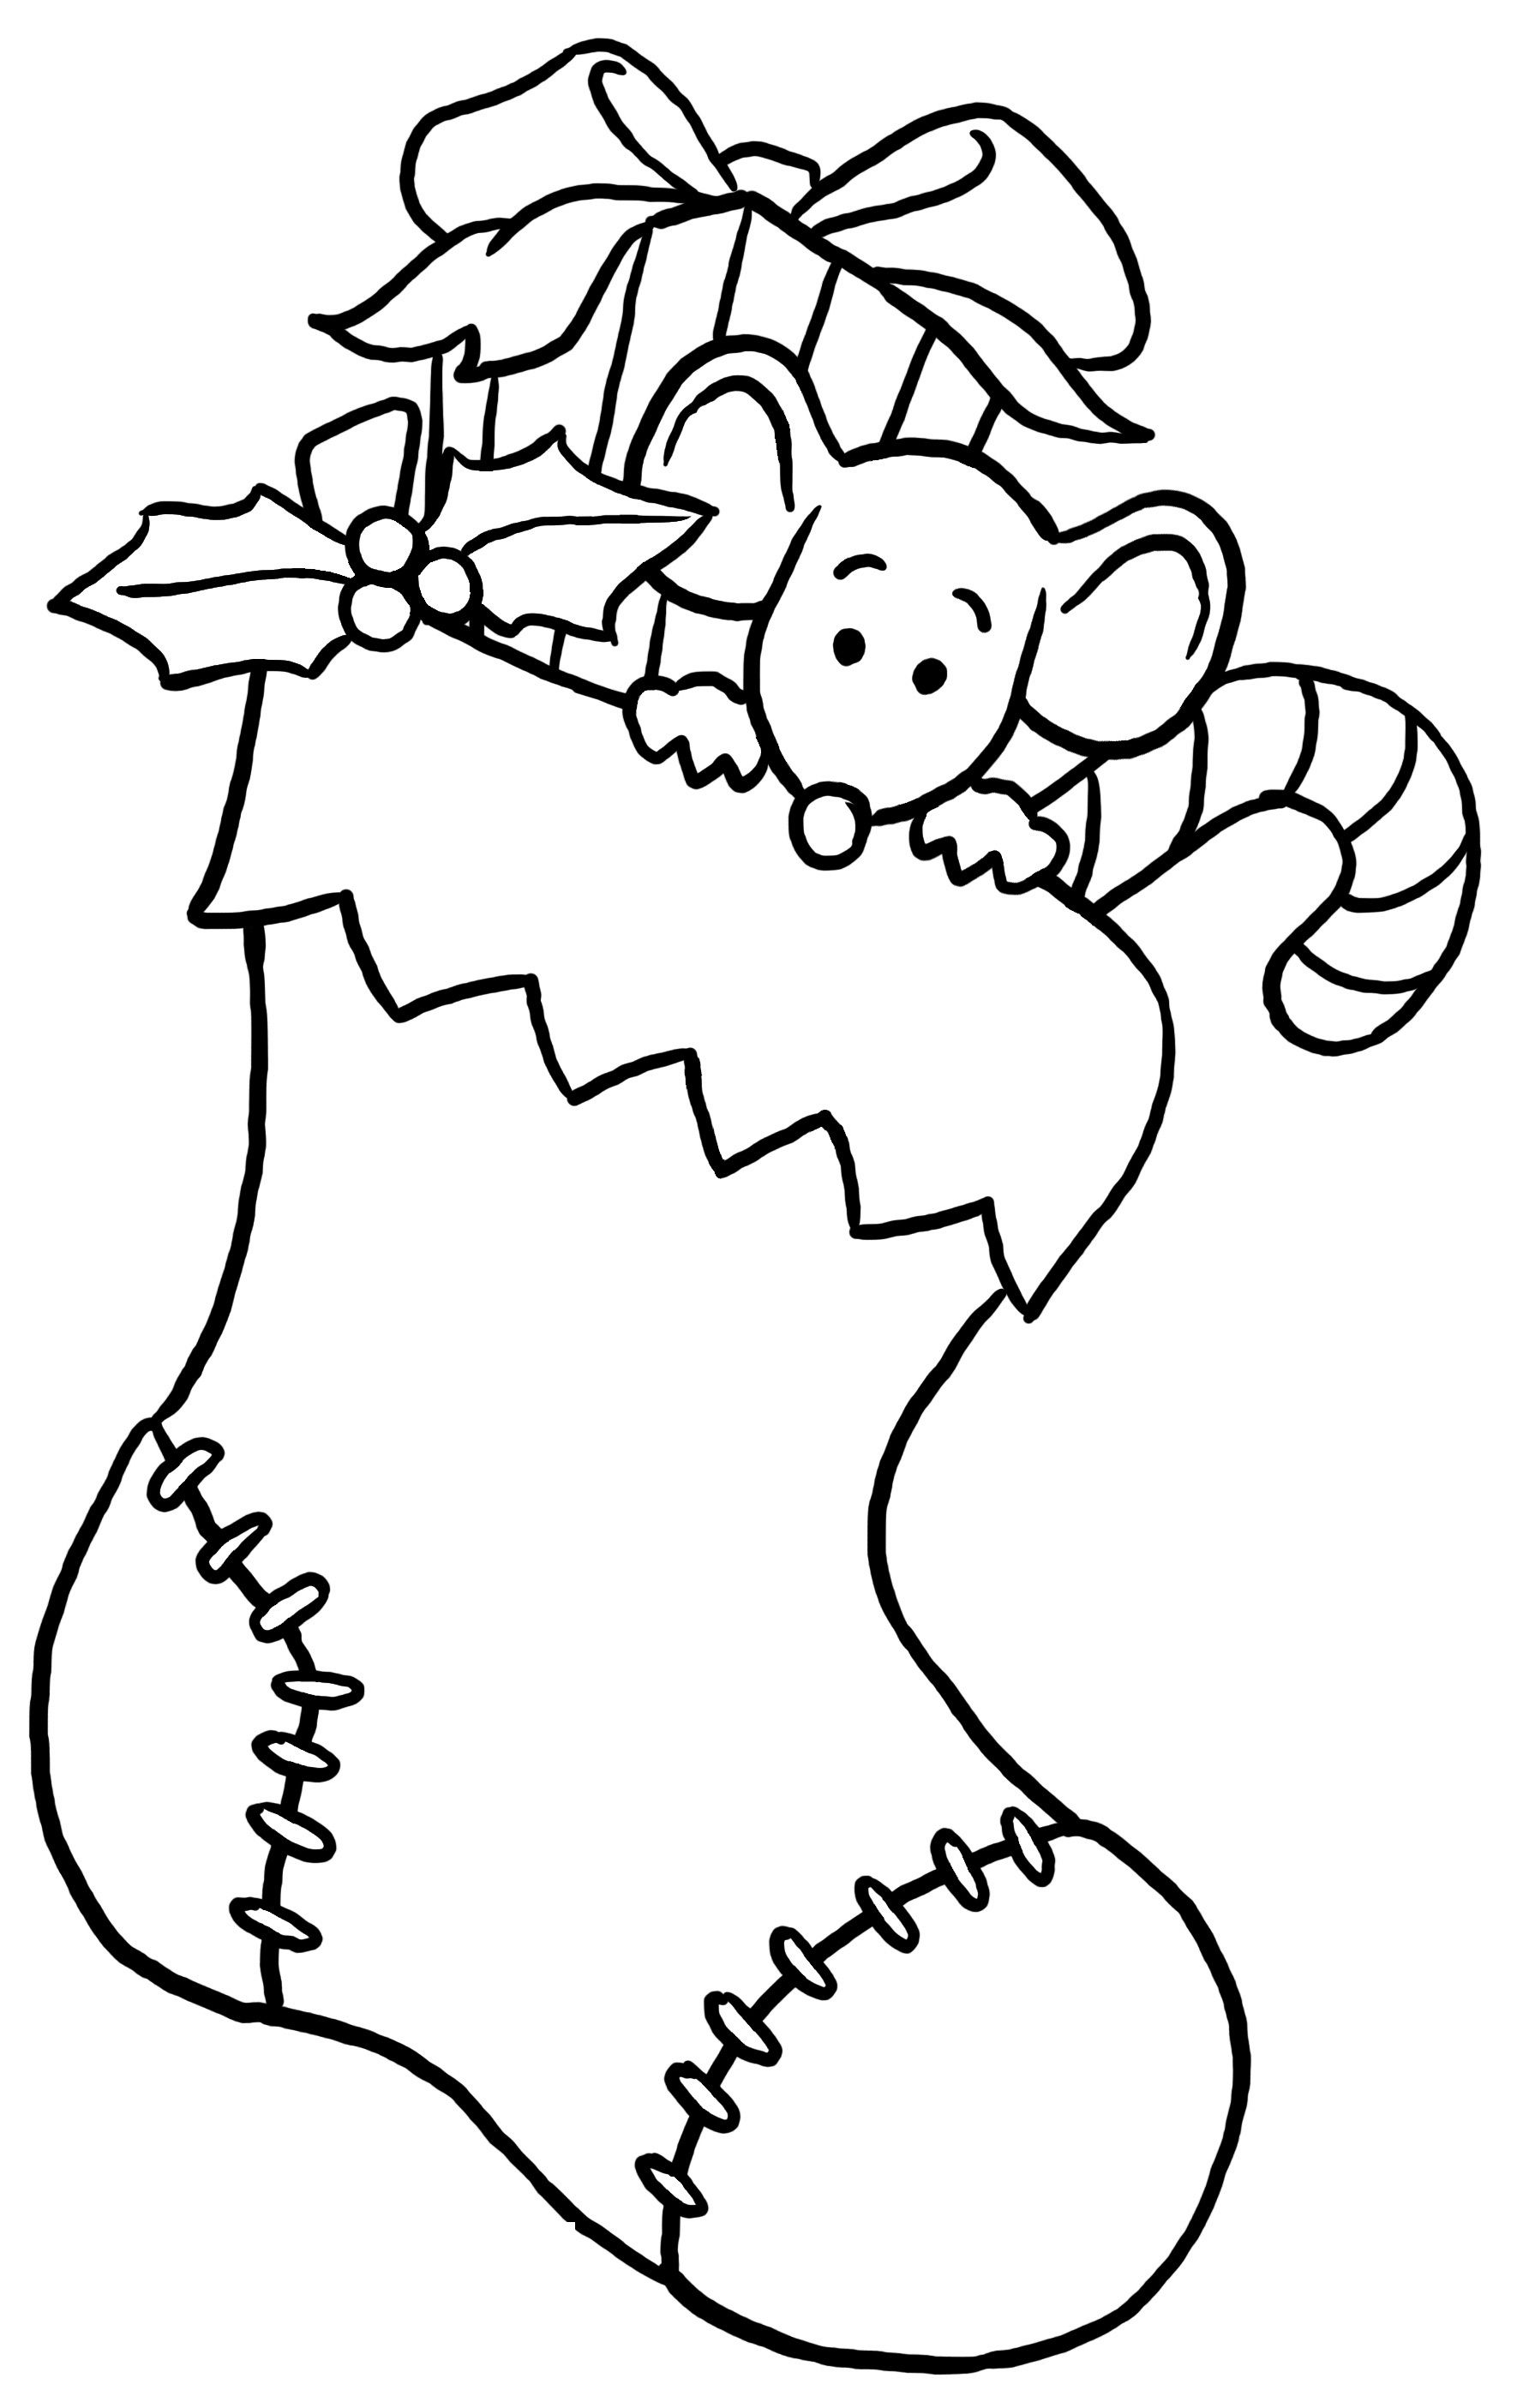 Mouse In The Christmas Stocking Coloring Pages For Kids 5n Printable Christmas Coloring Pages For Kids